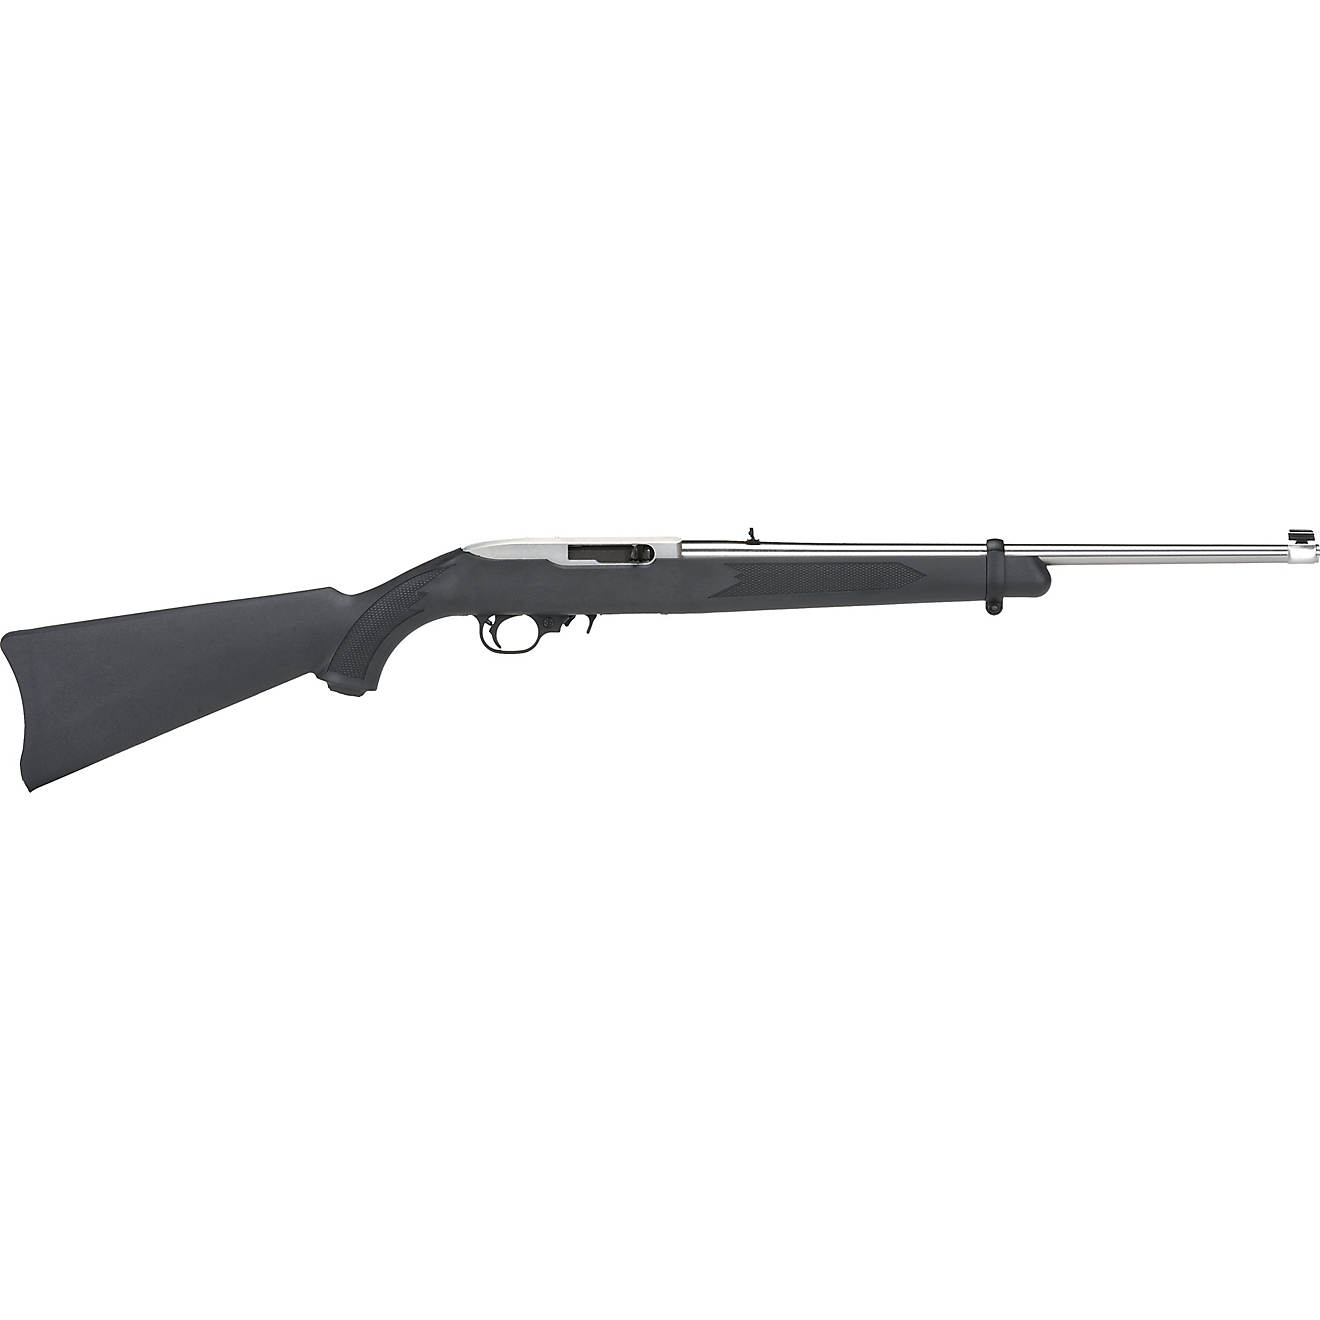 Ruger 1022 Carbine .22 LR Semiautomatic Rifle